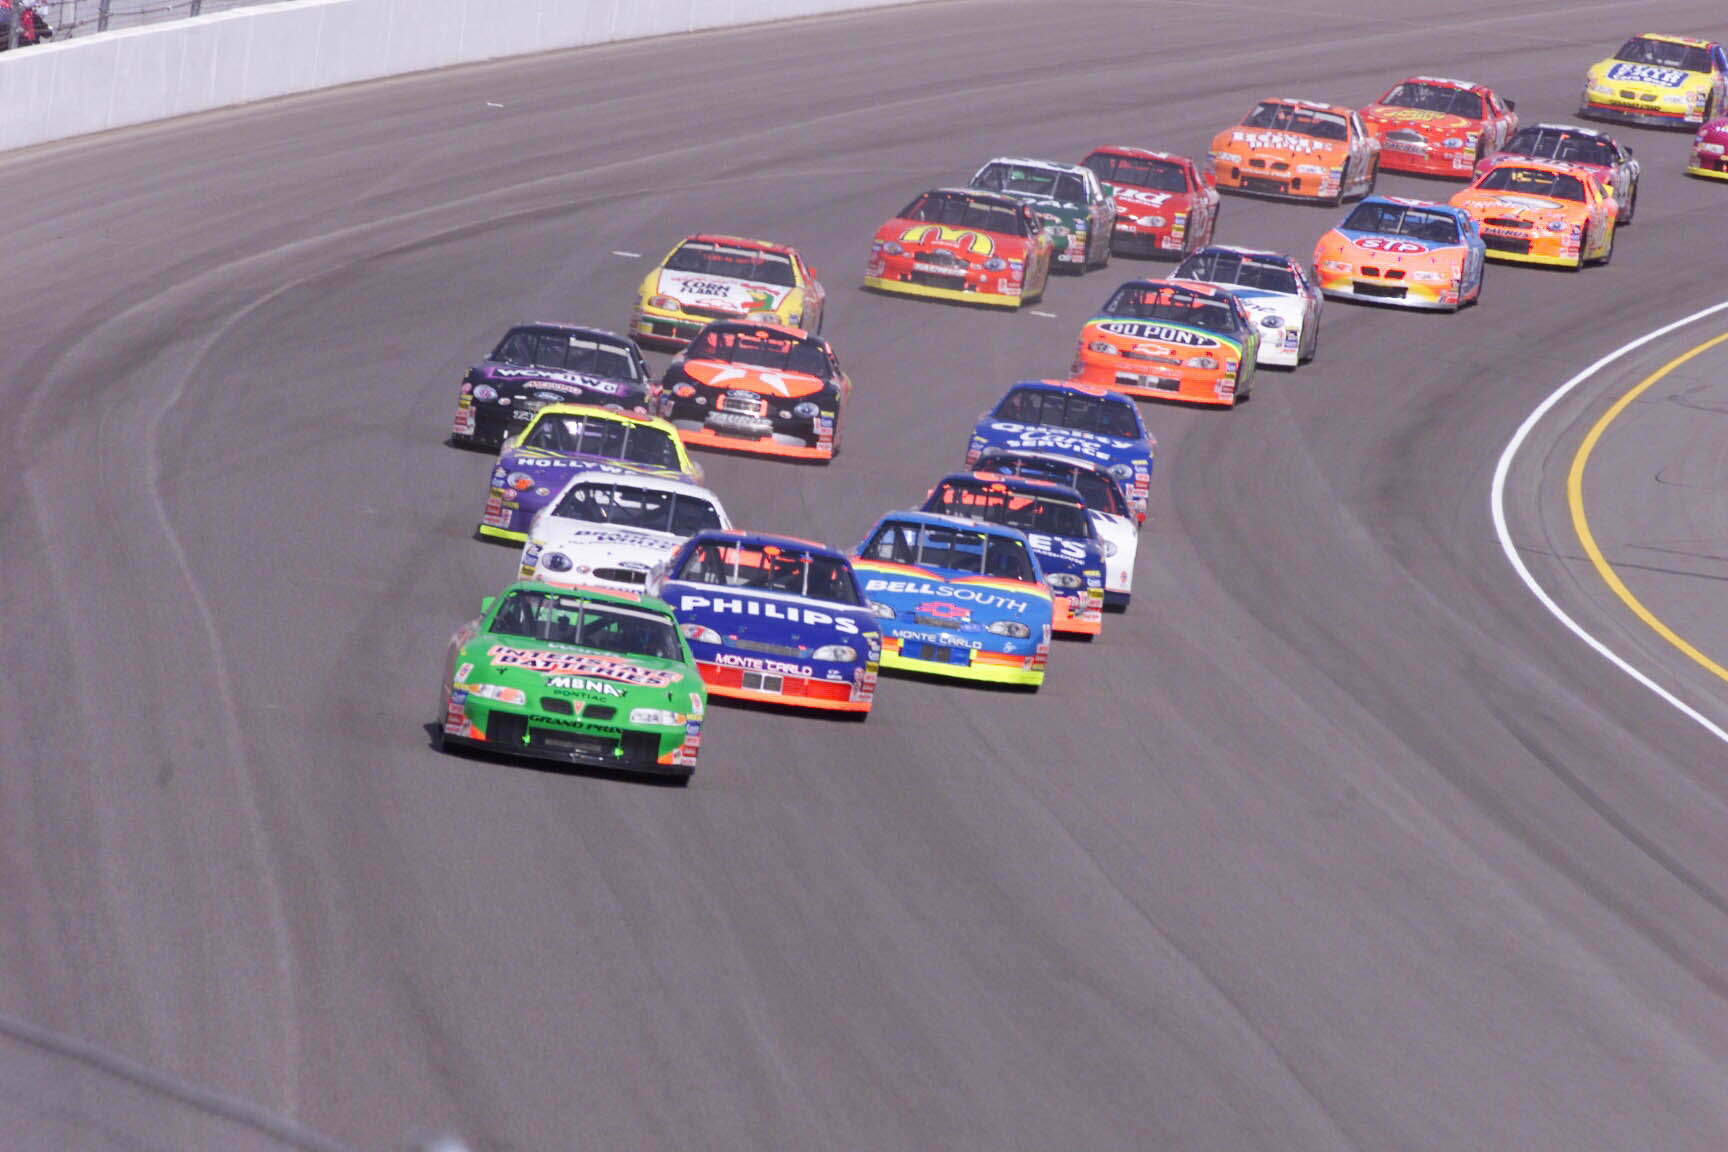 Pole winner Bobby Labonte leads the field of 43 cars takes the first lap in corner one at the start of the NASCAR Winston Cup Las Vegas 400 on Sunday, March 7, 1999. R. MARSH STARKS / LAS VEGAS SUN